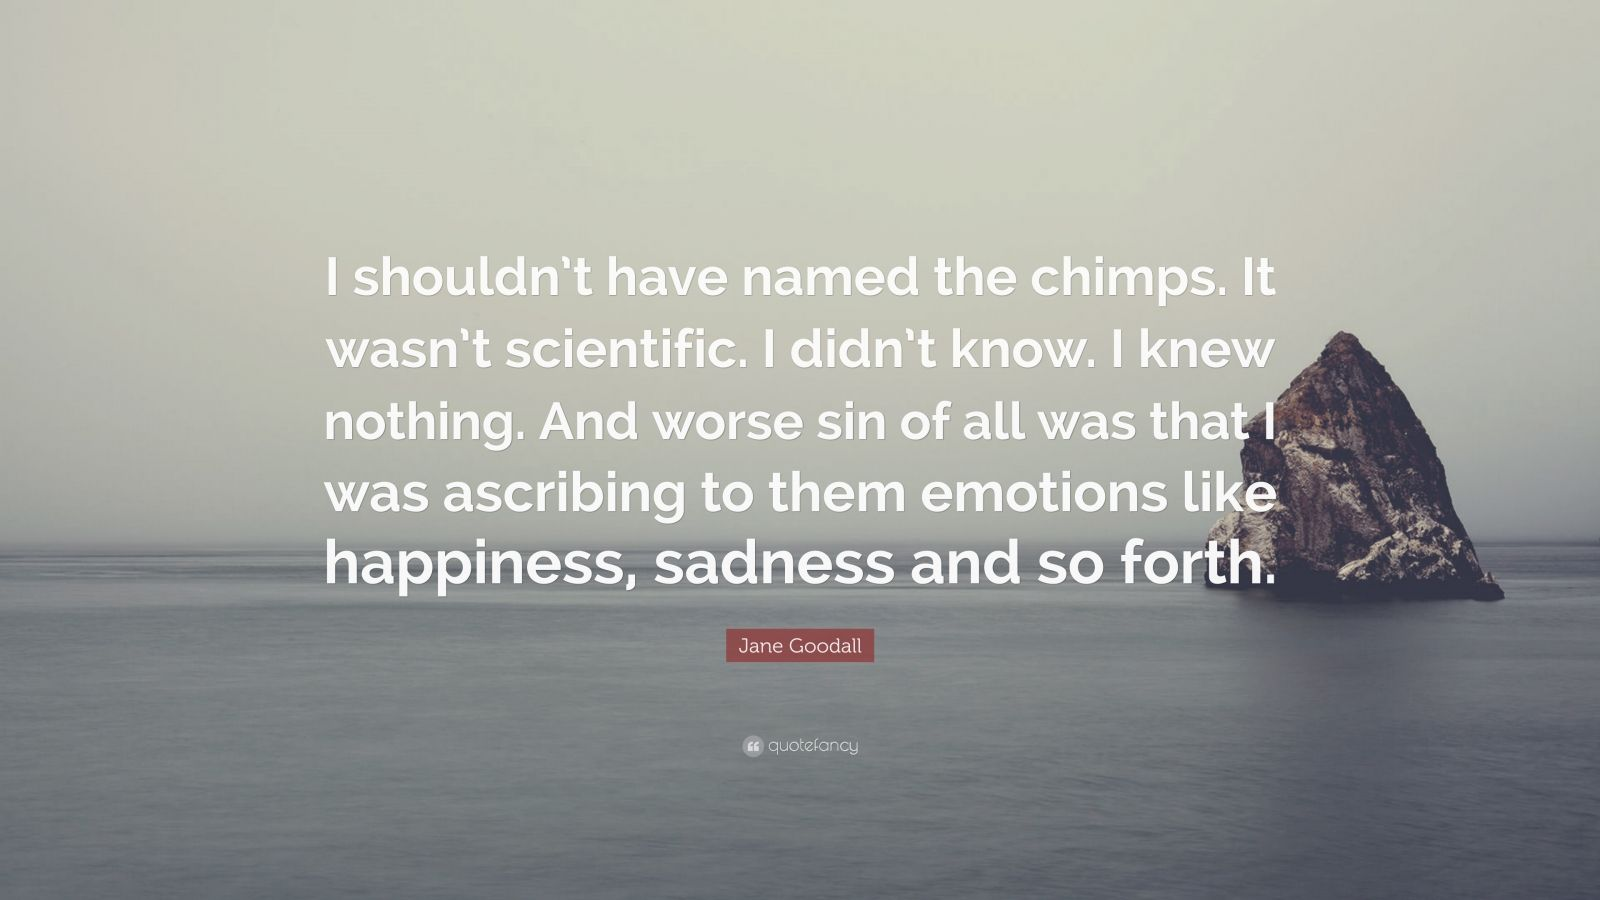 """Jane Goodall Quote: """"I shouldn't have named the chimps. It wasn't scientific. I didn't know. I knew nothing. And worse sin of all was that I was ascribing to them emotions like happiness, sadness and so forth."""""""